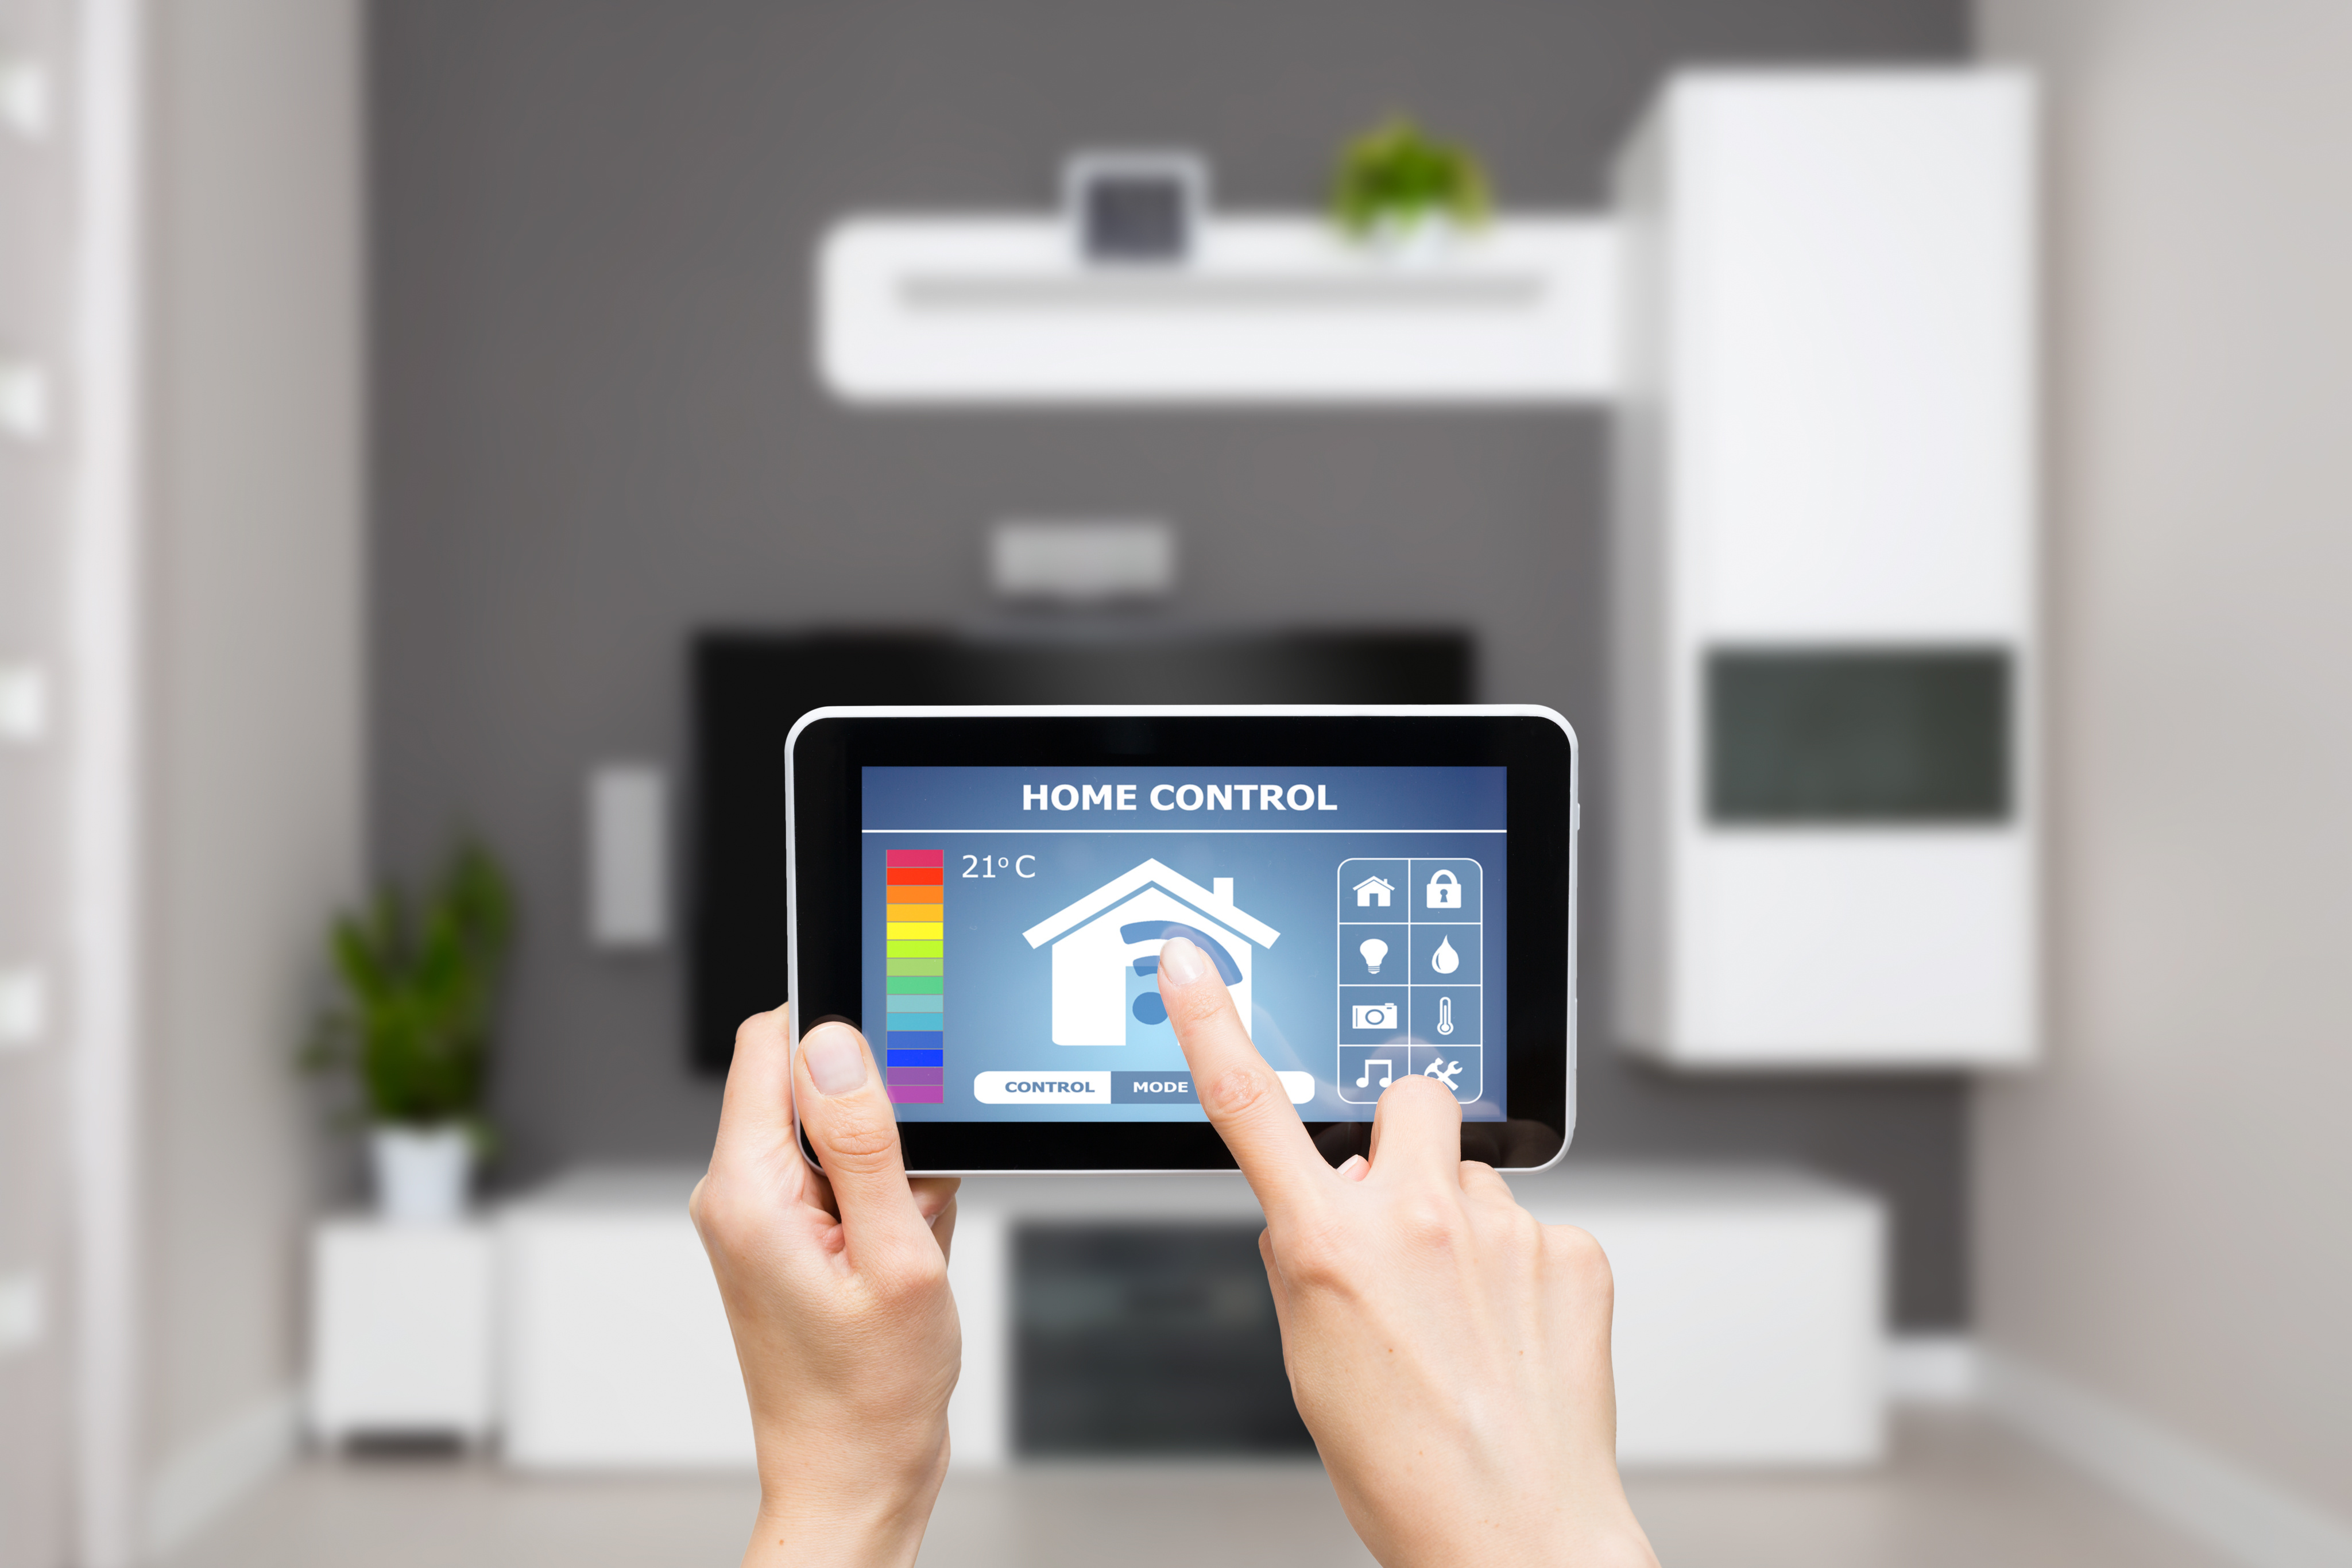 Smart home tech presents new opportunities